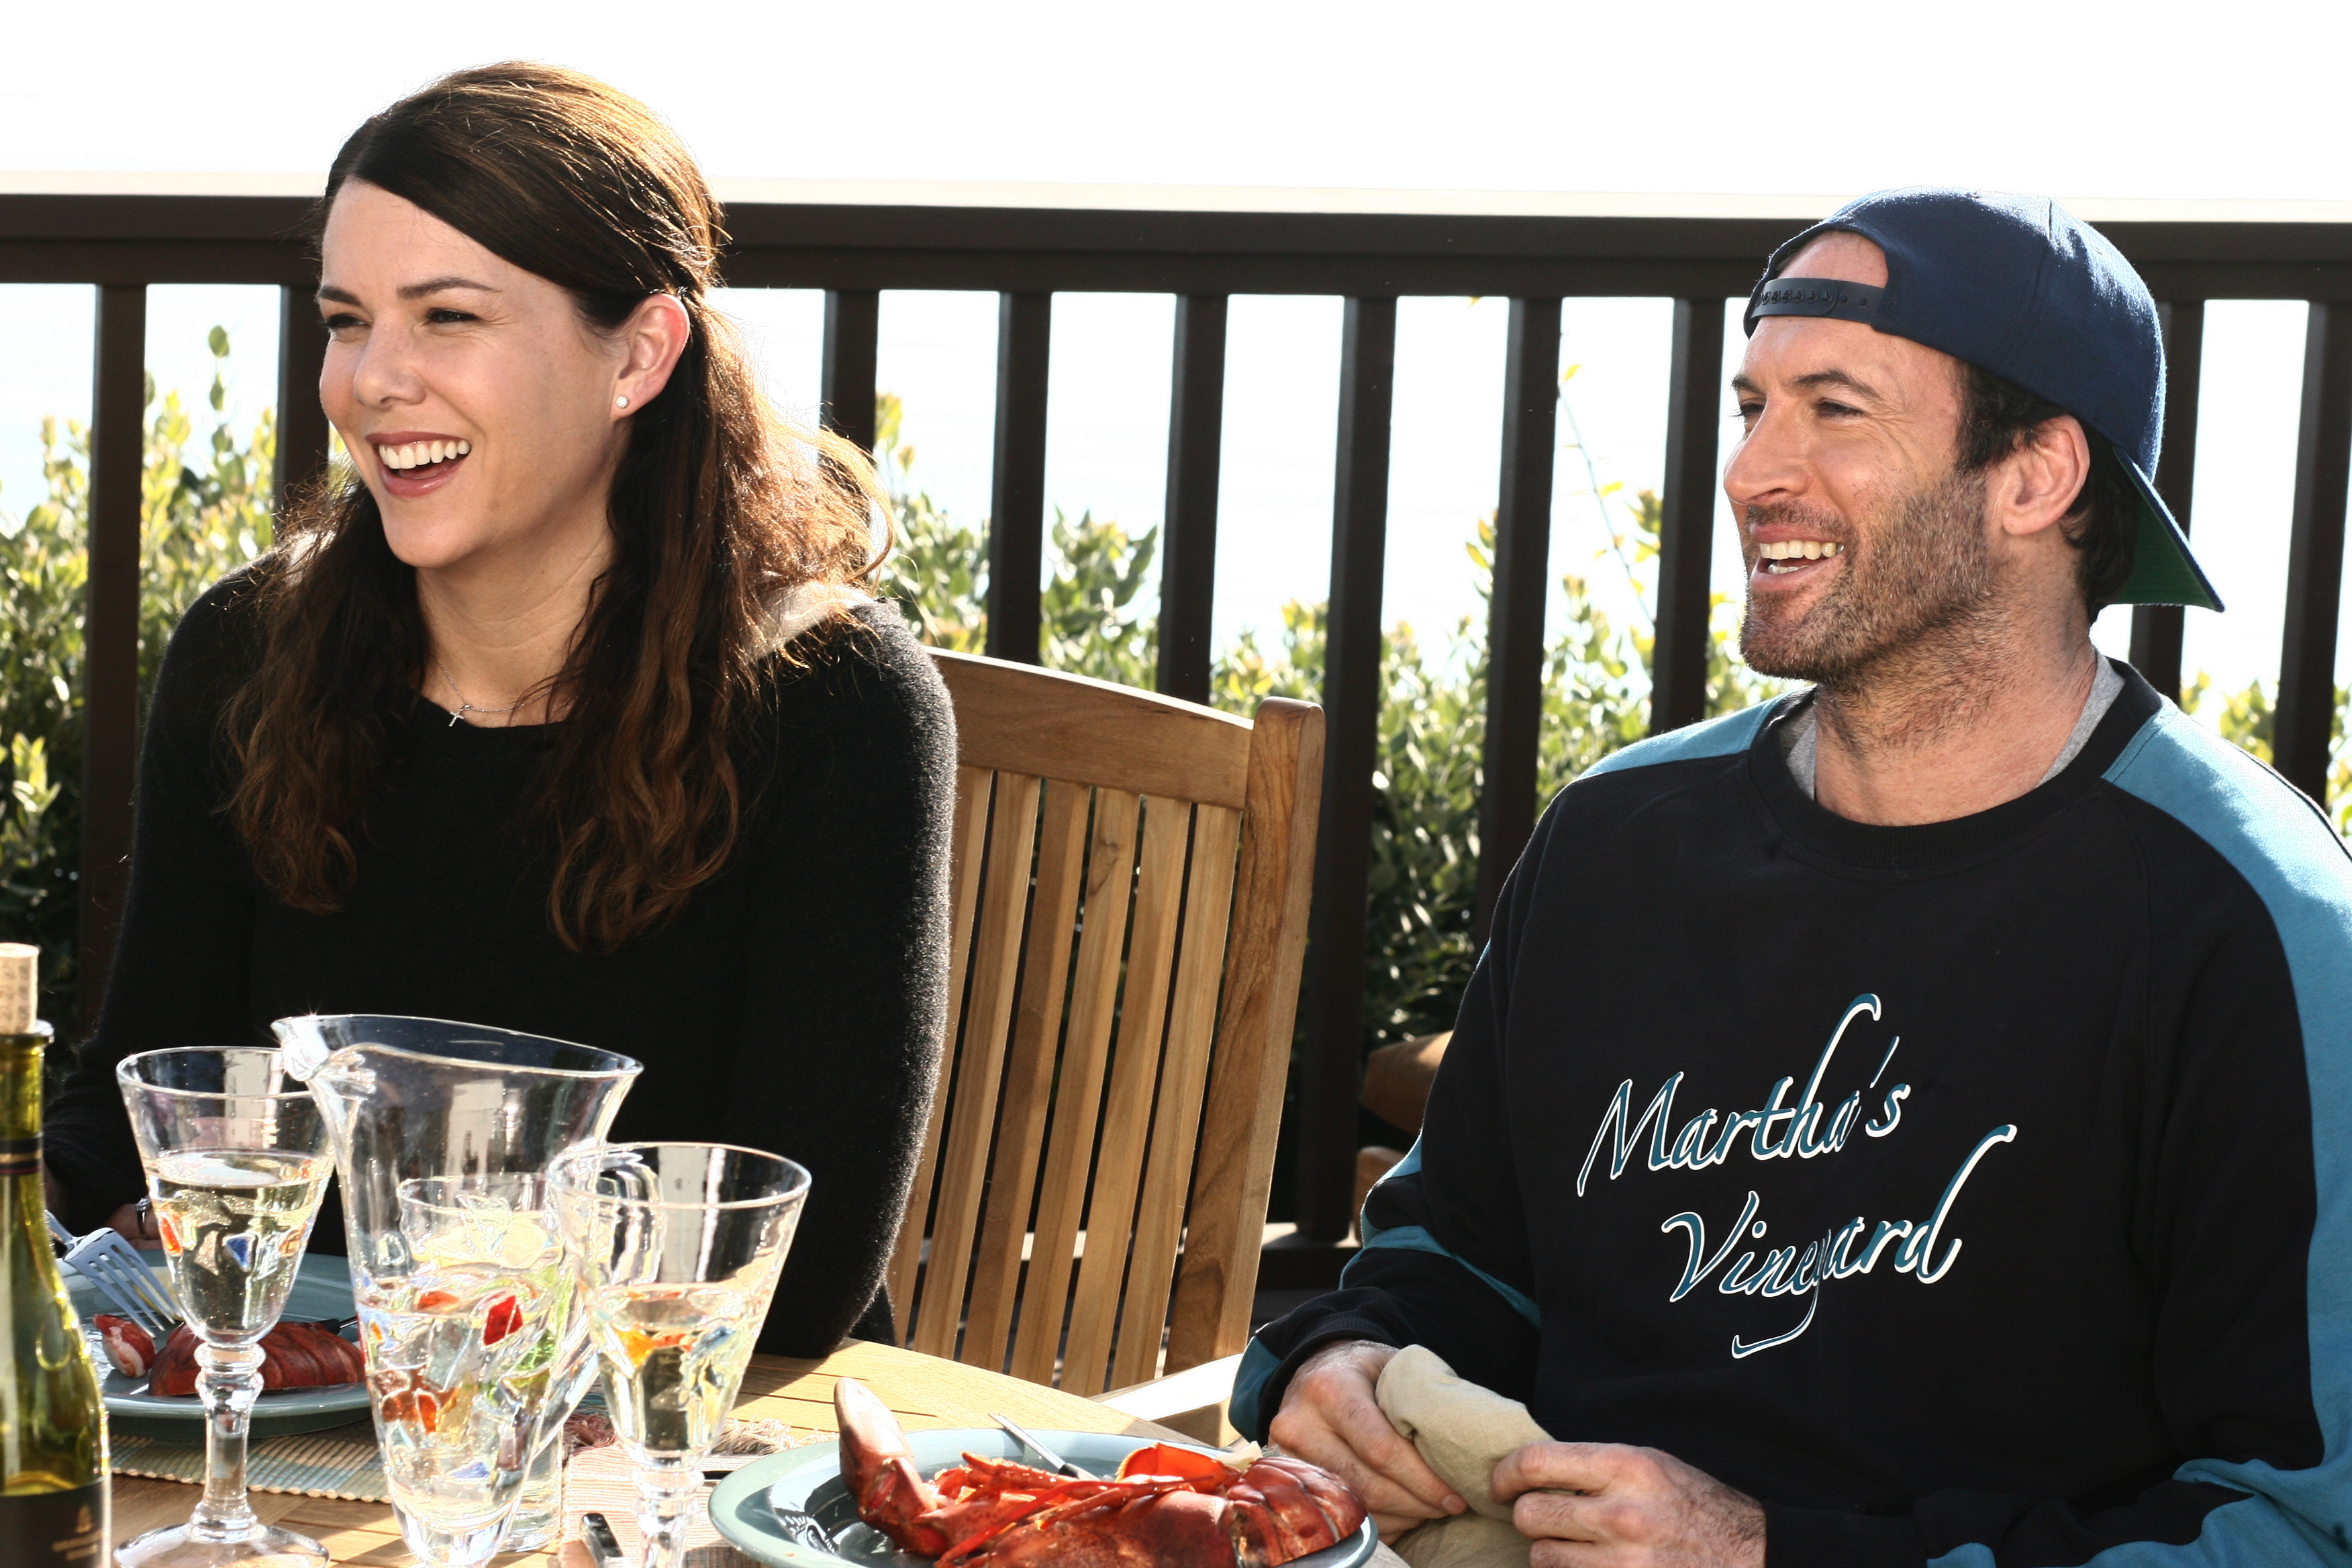 Medium shot of Lauren Graham as Lorelai sitting at patio dining table with Scott Patterson as Luke.